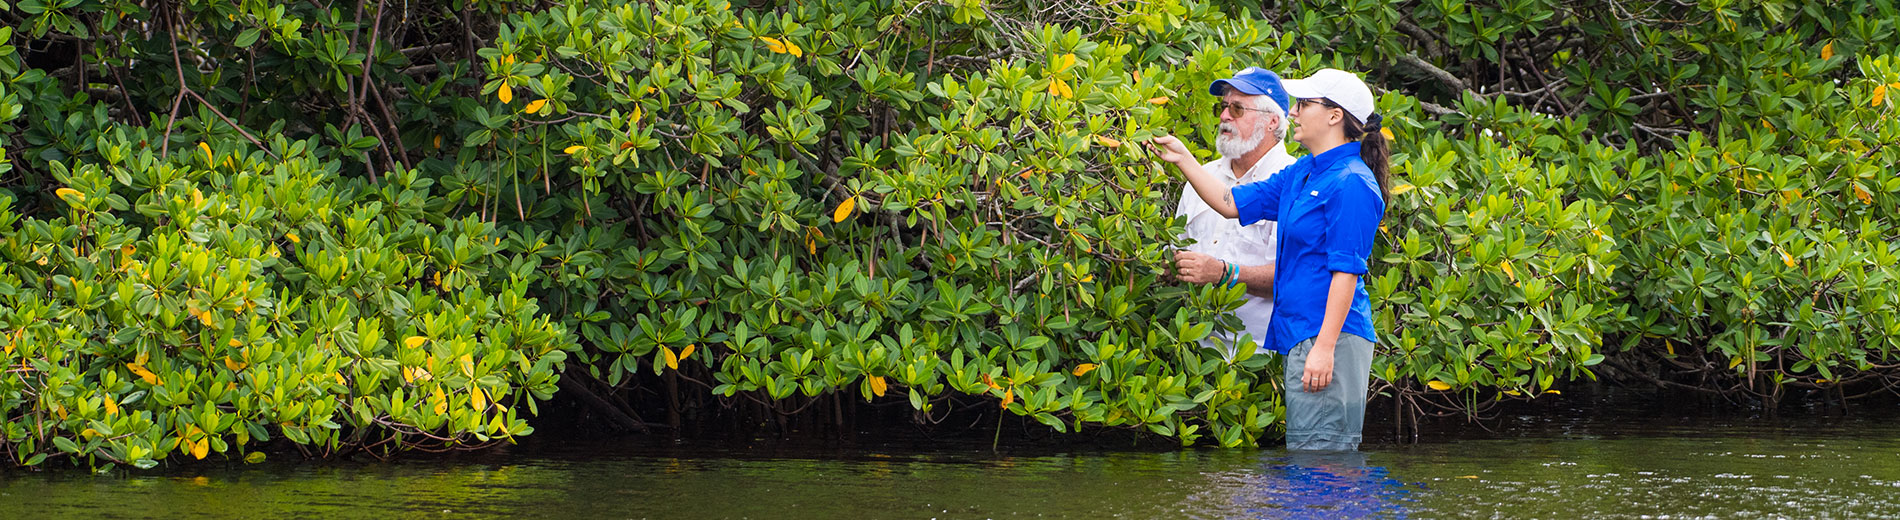 Photo show researchers looking at mangroves